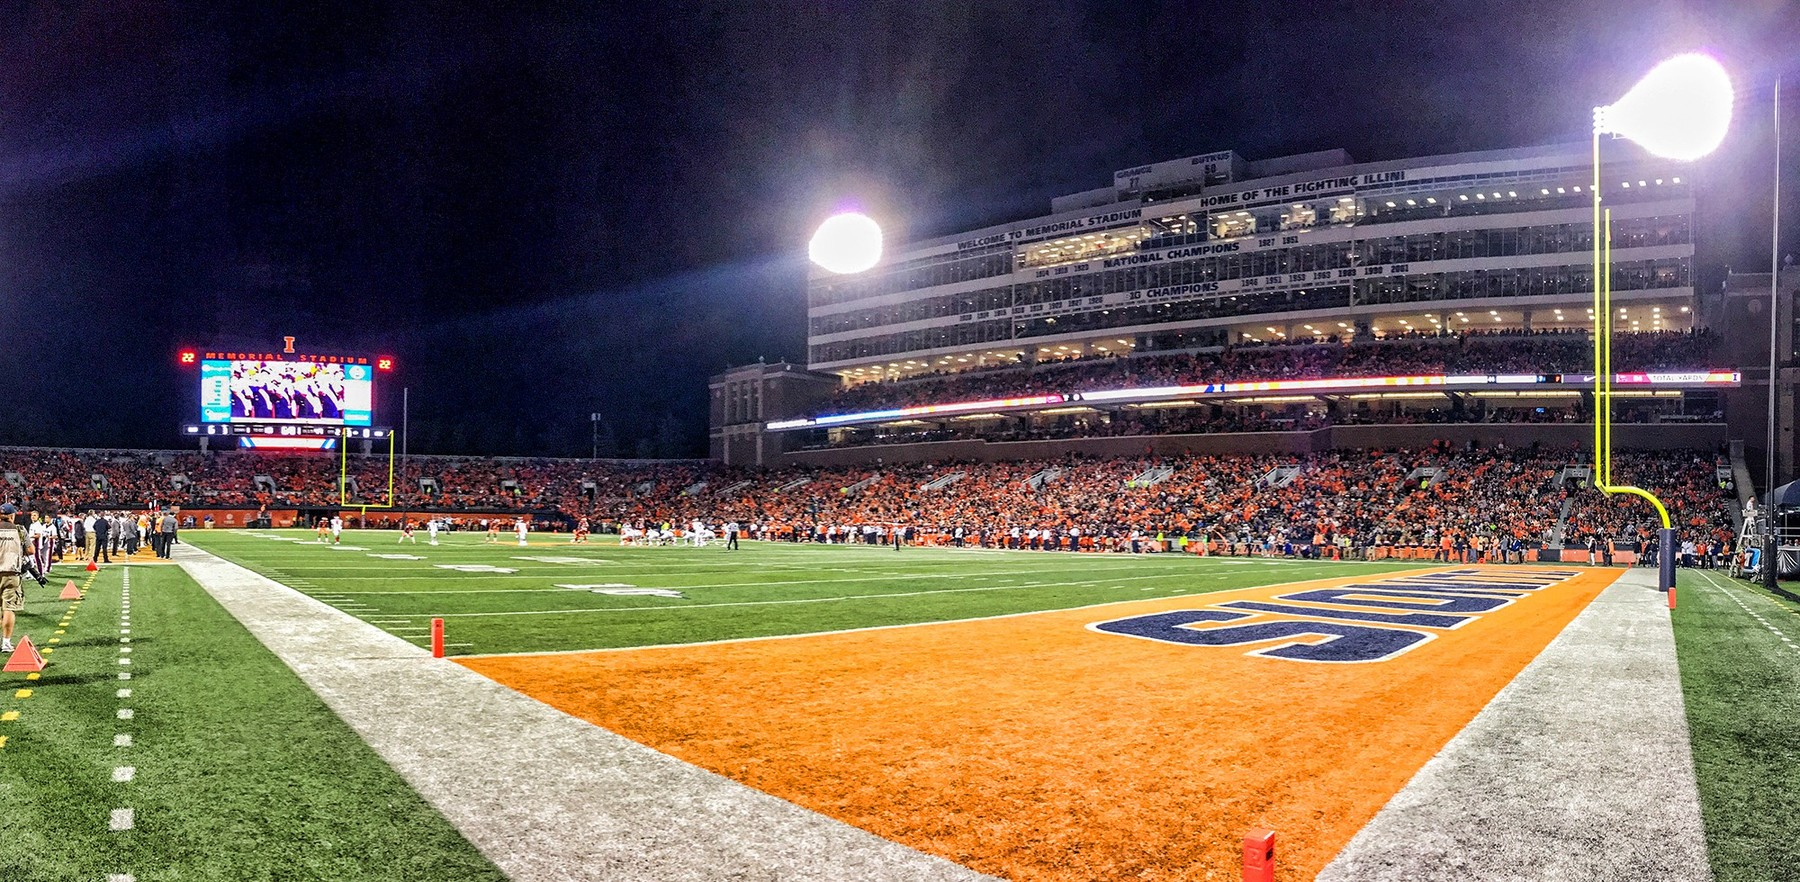 Memorial Stadium on a game night